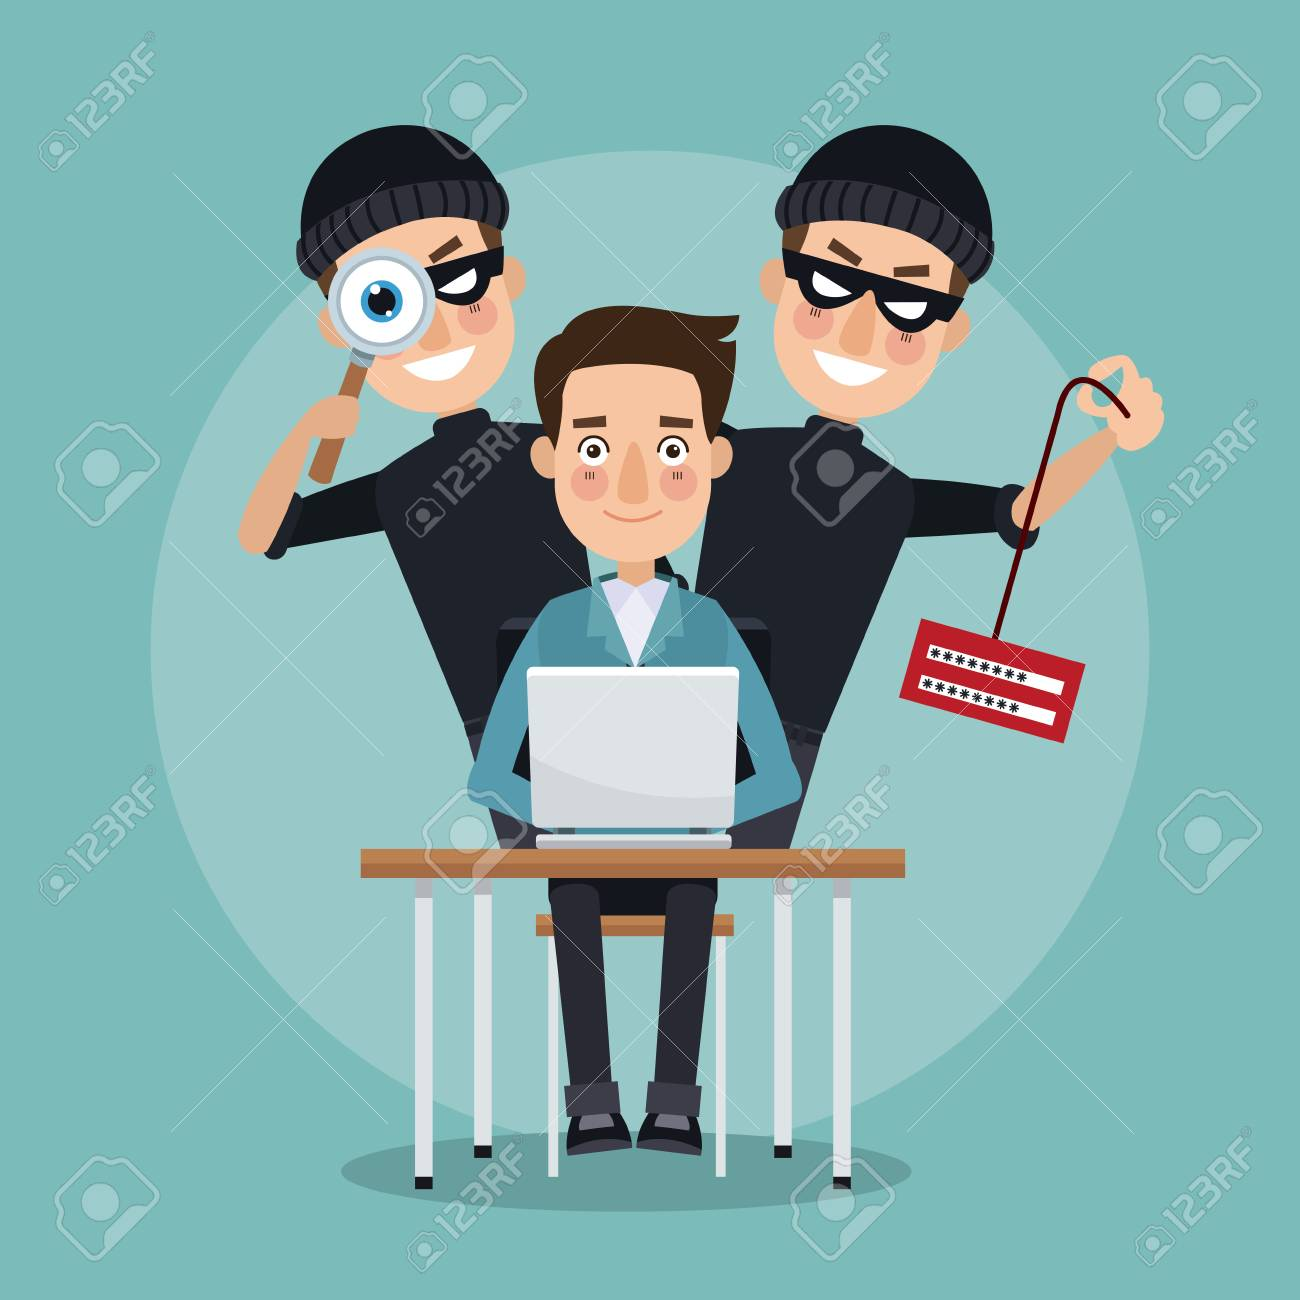 scene color programmer man in desk with laptop and pair thief men hacker stealing information and spying vector illustration - 79752276